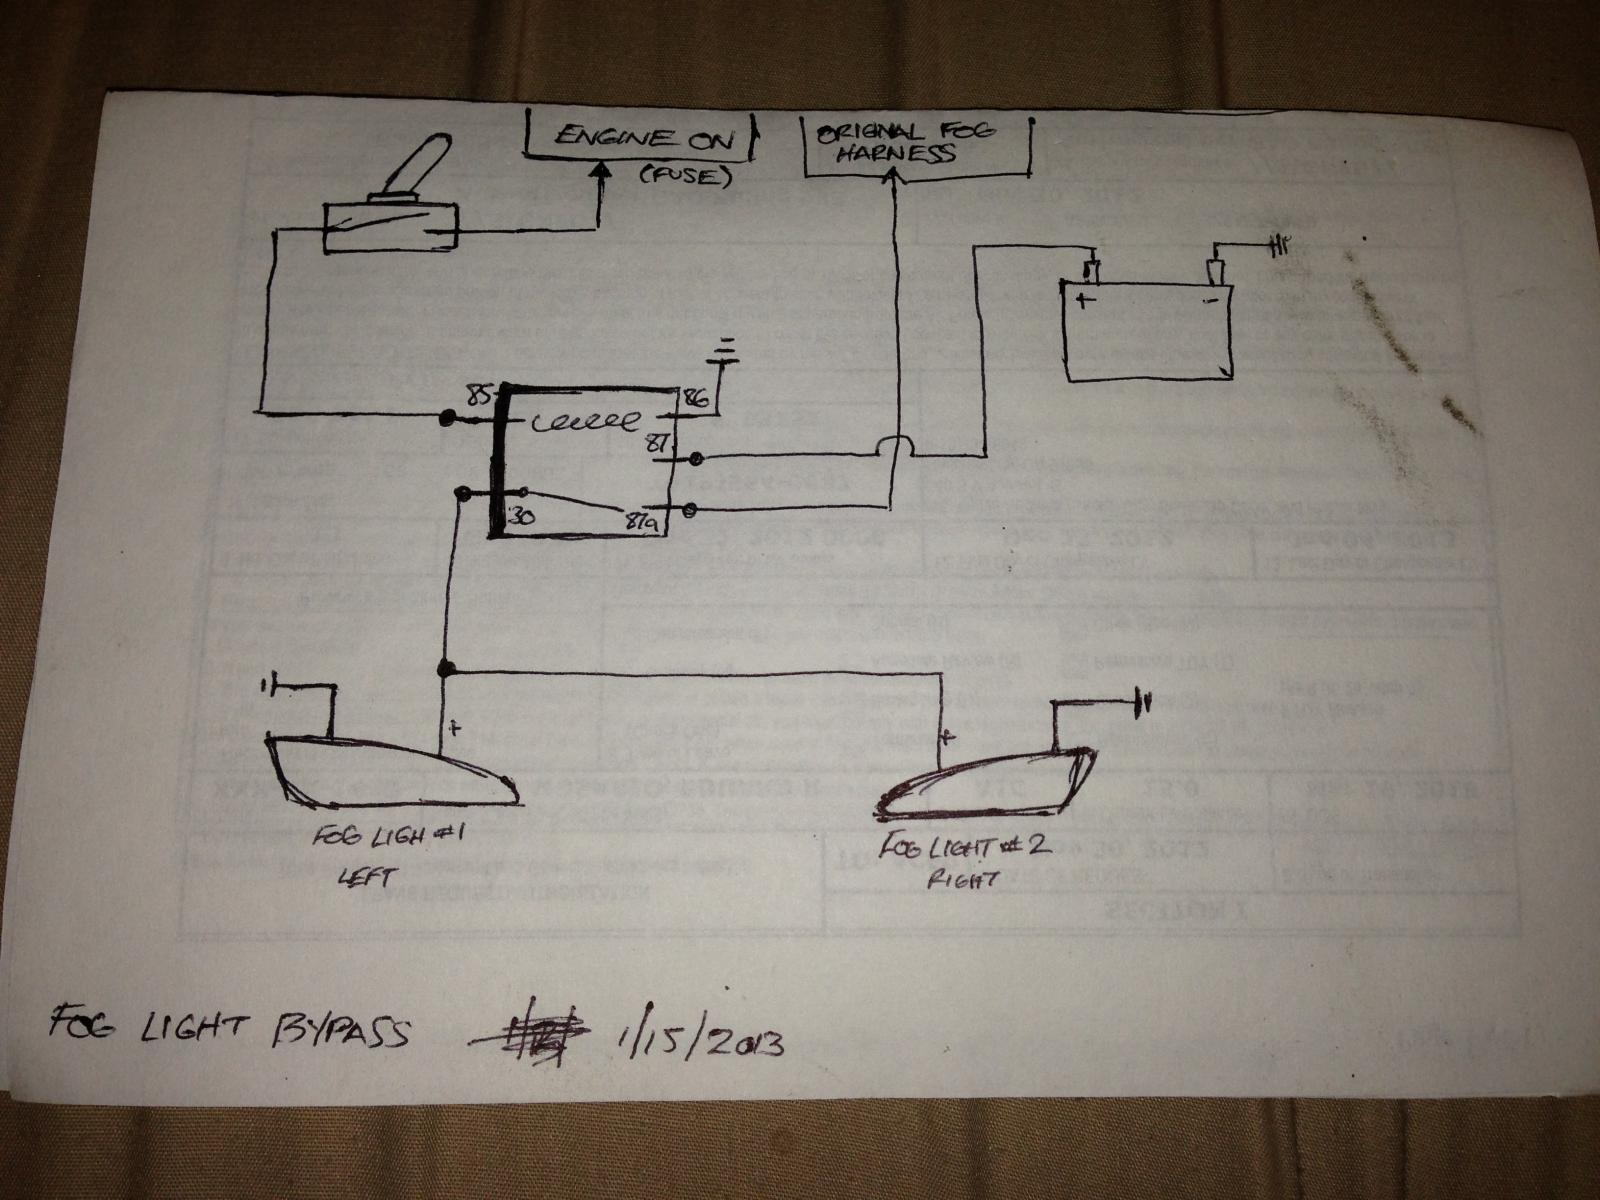 hight resolution of 2013 hyundai genesis wiring harness diagram